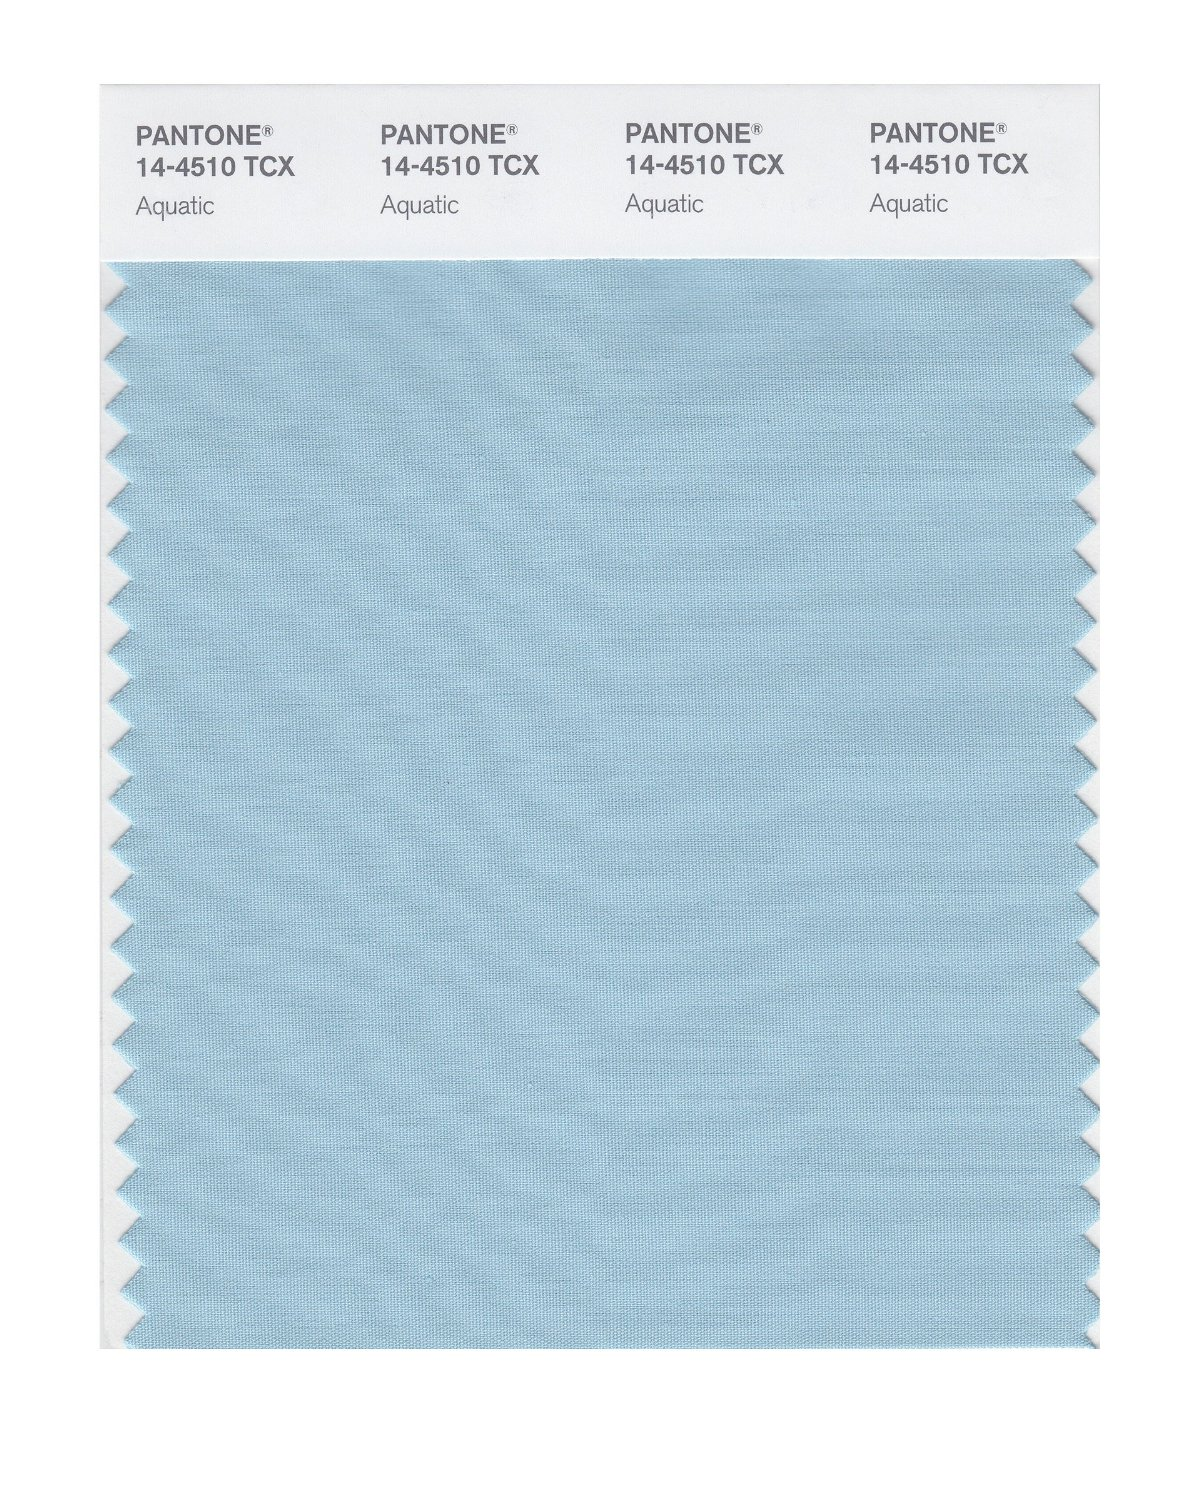 Pantone Smart Swatch 14-4510 Aquatic